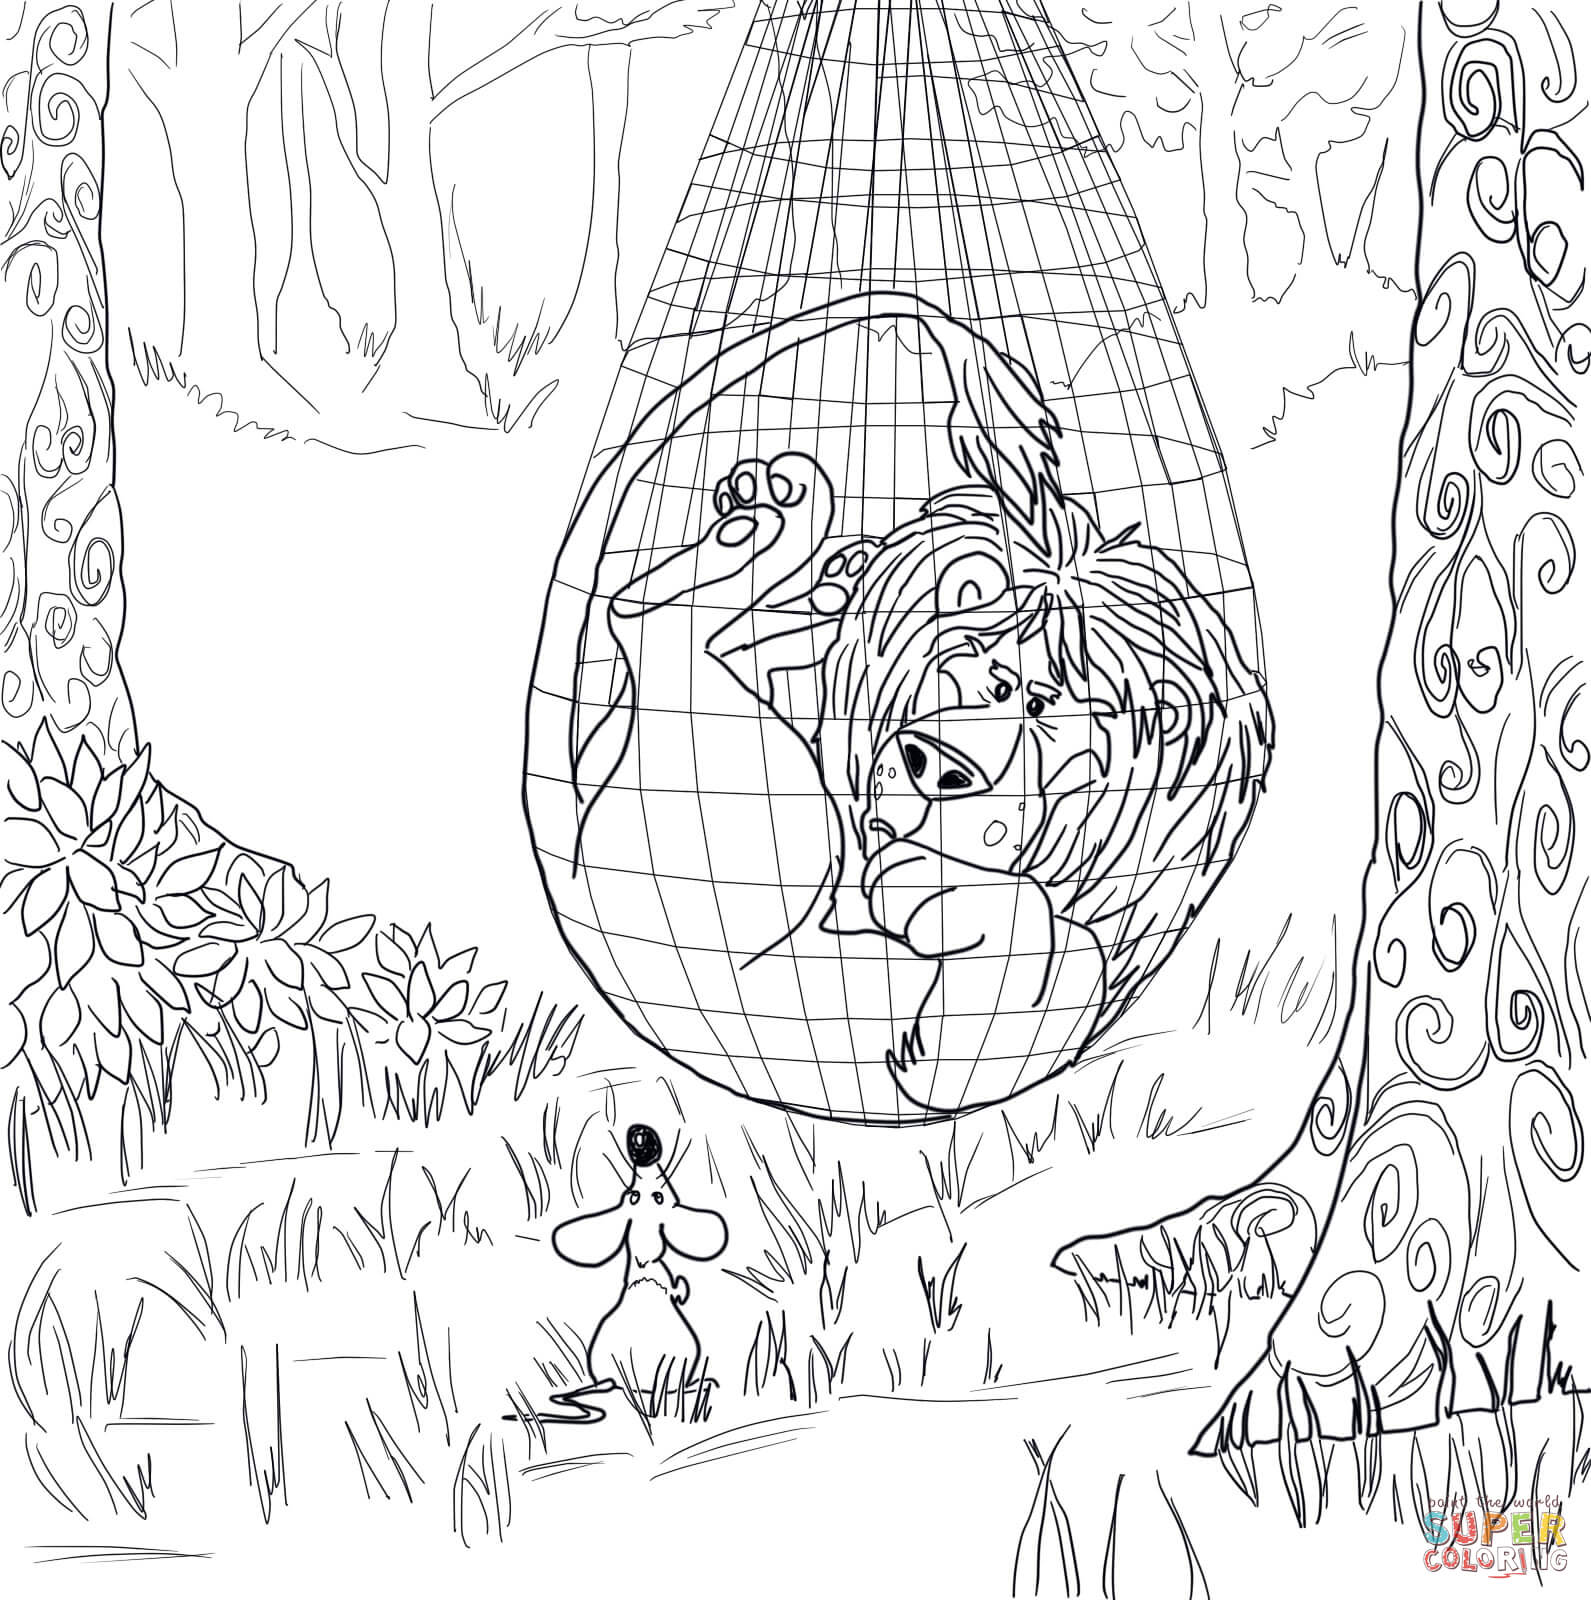 The Lion Trapped In The Net Coloring Page | Free Printable